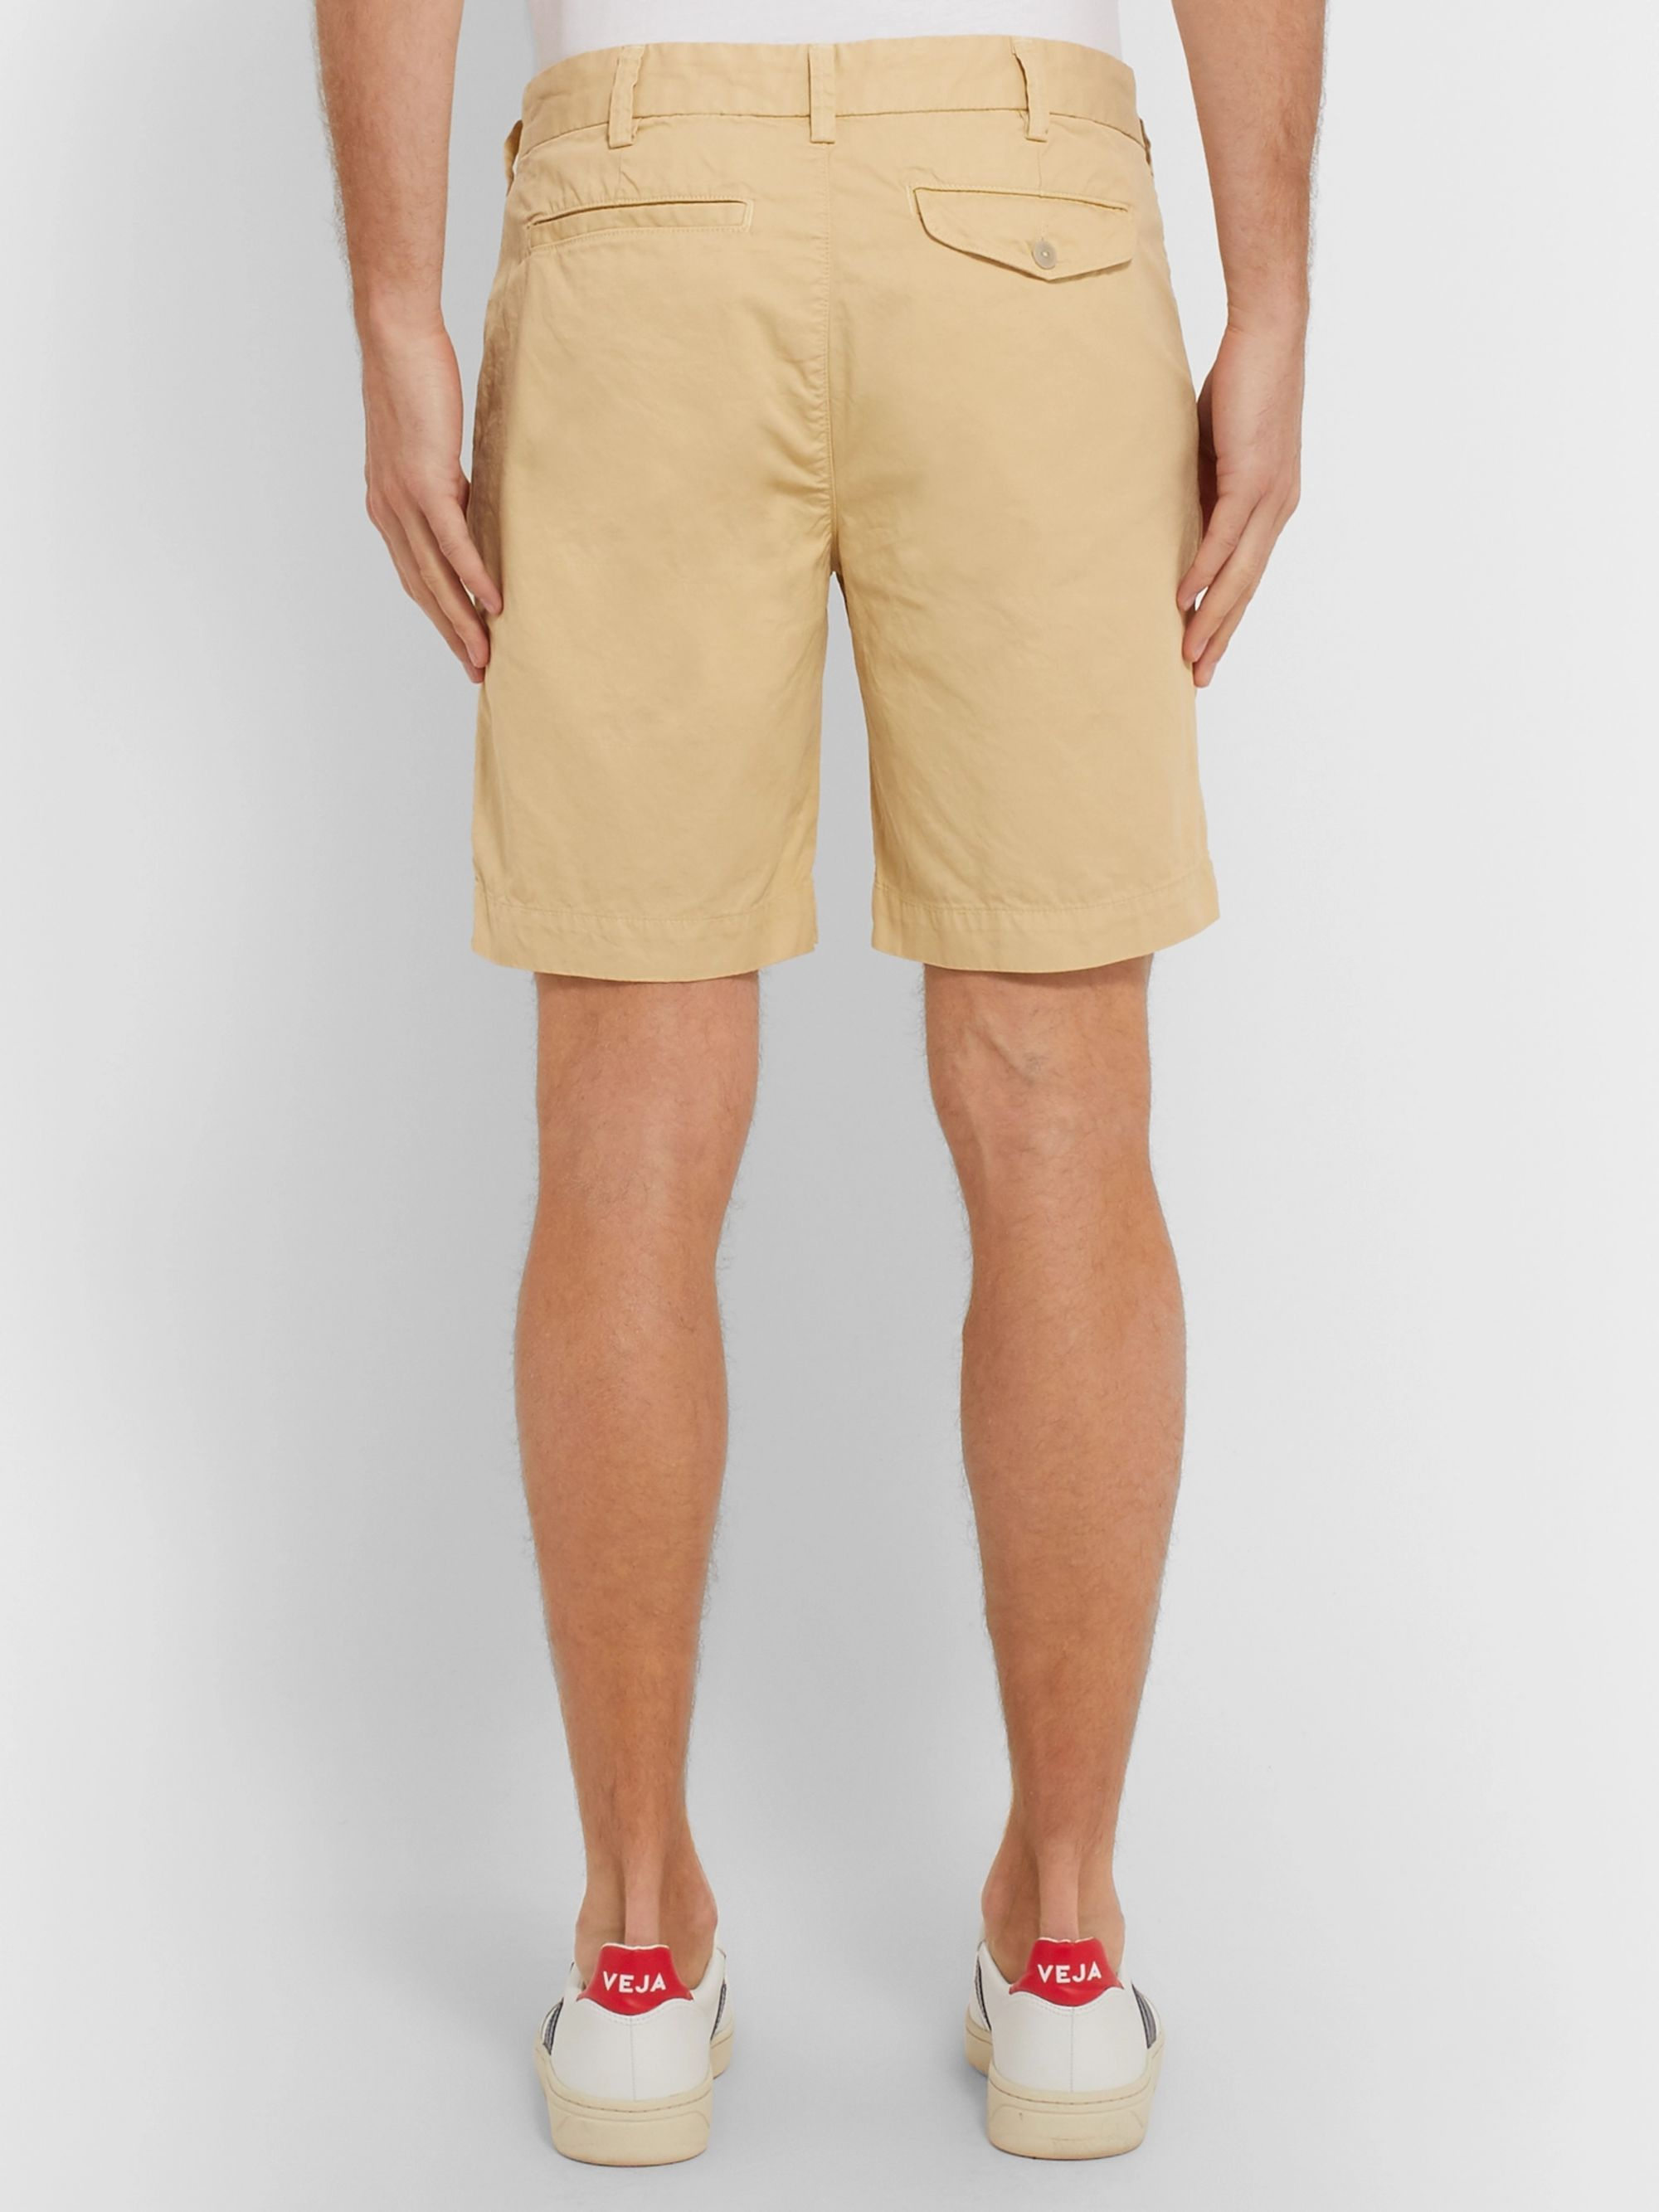 Save Khaki United Slim-Fit Cotton-Twill Shorts